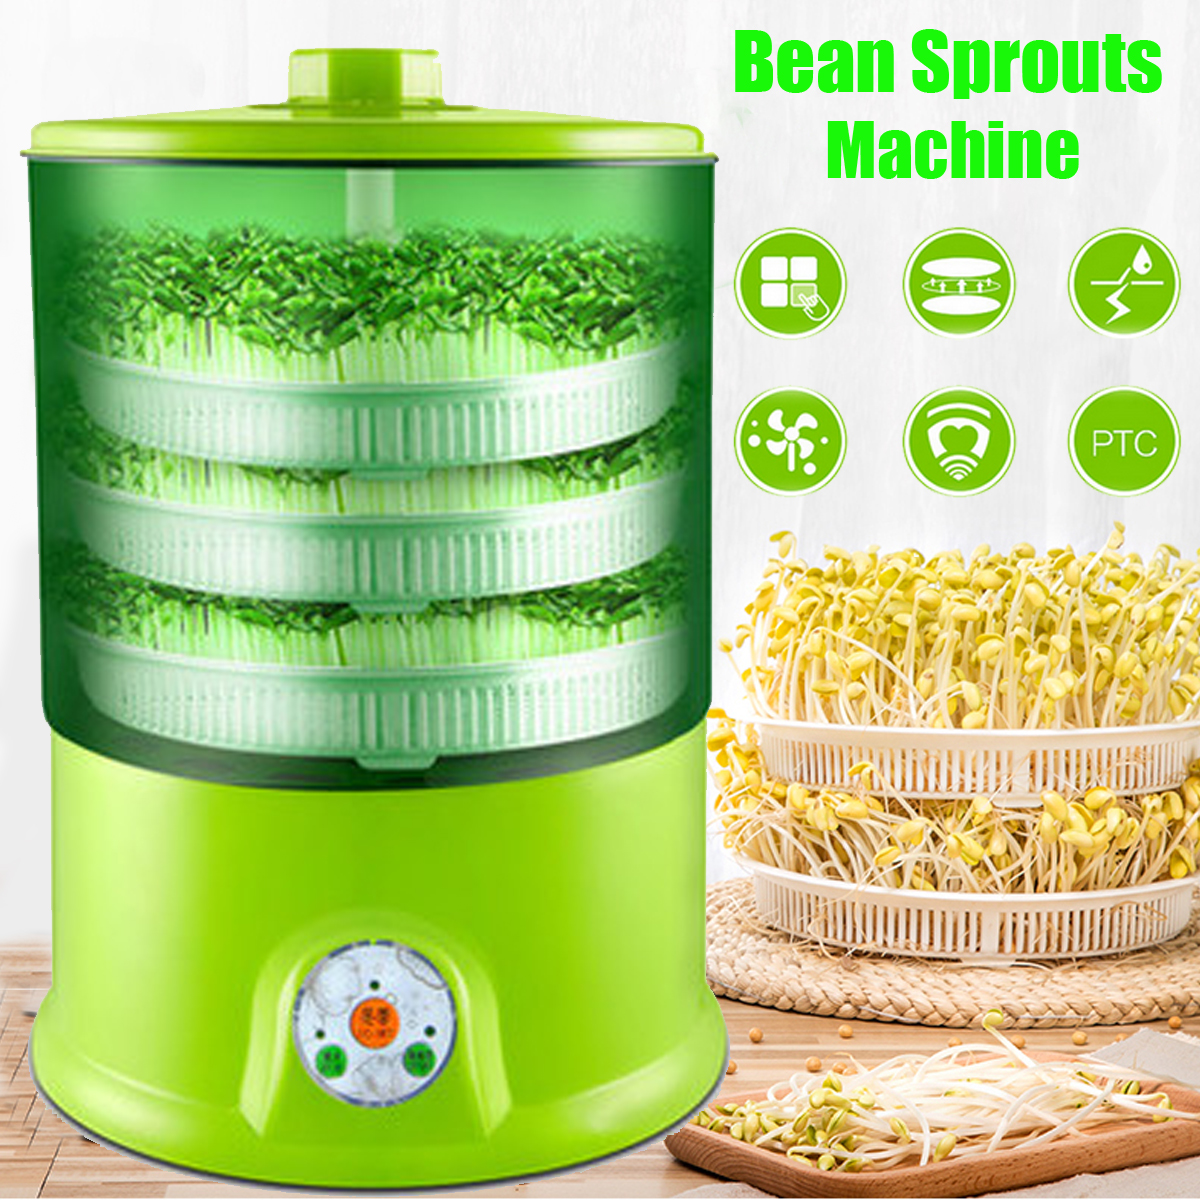 Warmtoo 1.5L 3 Layers Ntelligent Bean Sprouts Machine Multifunctional Automatic Bean Sprouts Homemade DIY Tools 220v 260x330mmWarmtoo 1.5L 3 Layers Ntelligent Bean Sprouts Machine Multifunctional Automatic Bean Sprouts Homemade DIY Tools 220v 260x330mm